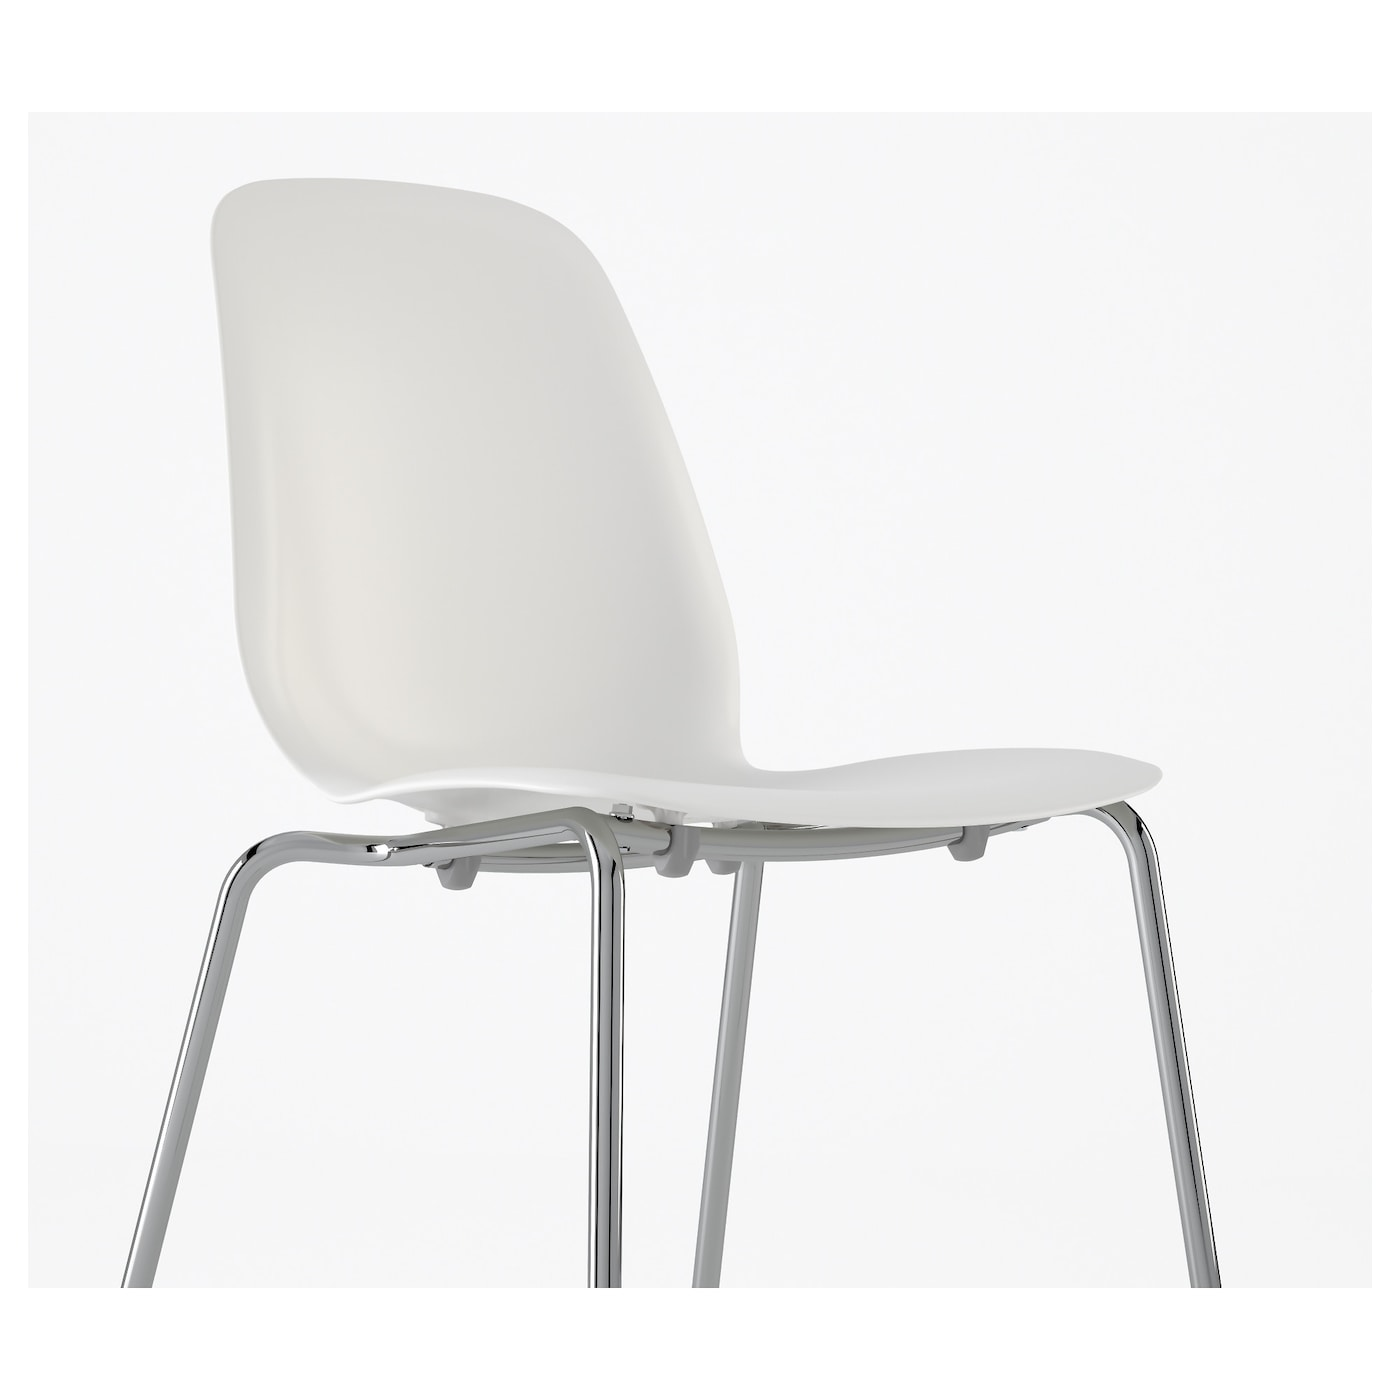 LEIFARNE Chair White broringe chrome plated IKEA